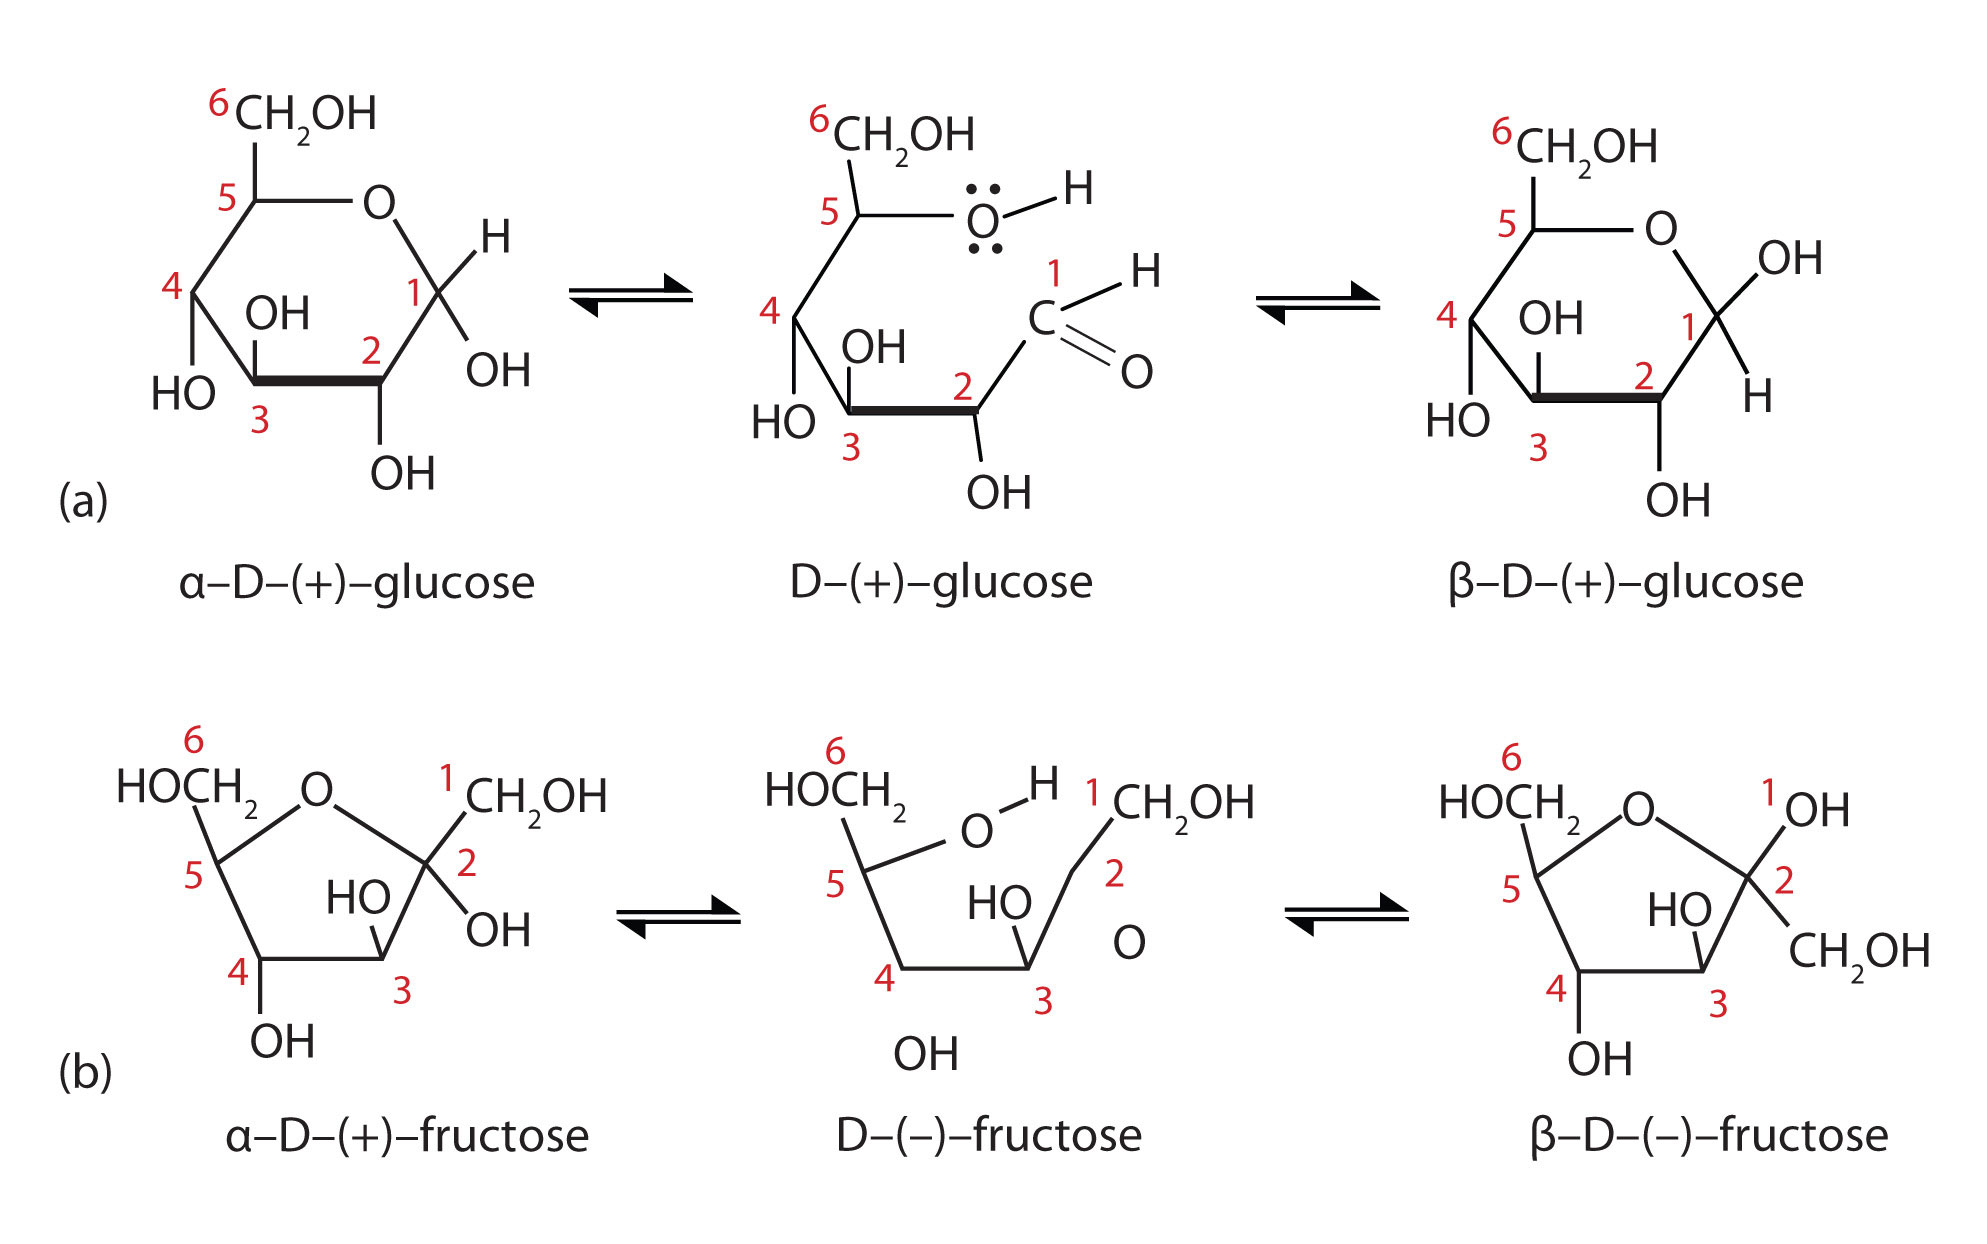 D Fructose Structure Cyclic Structures of M...